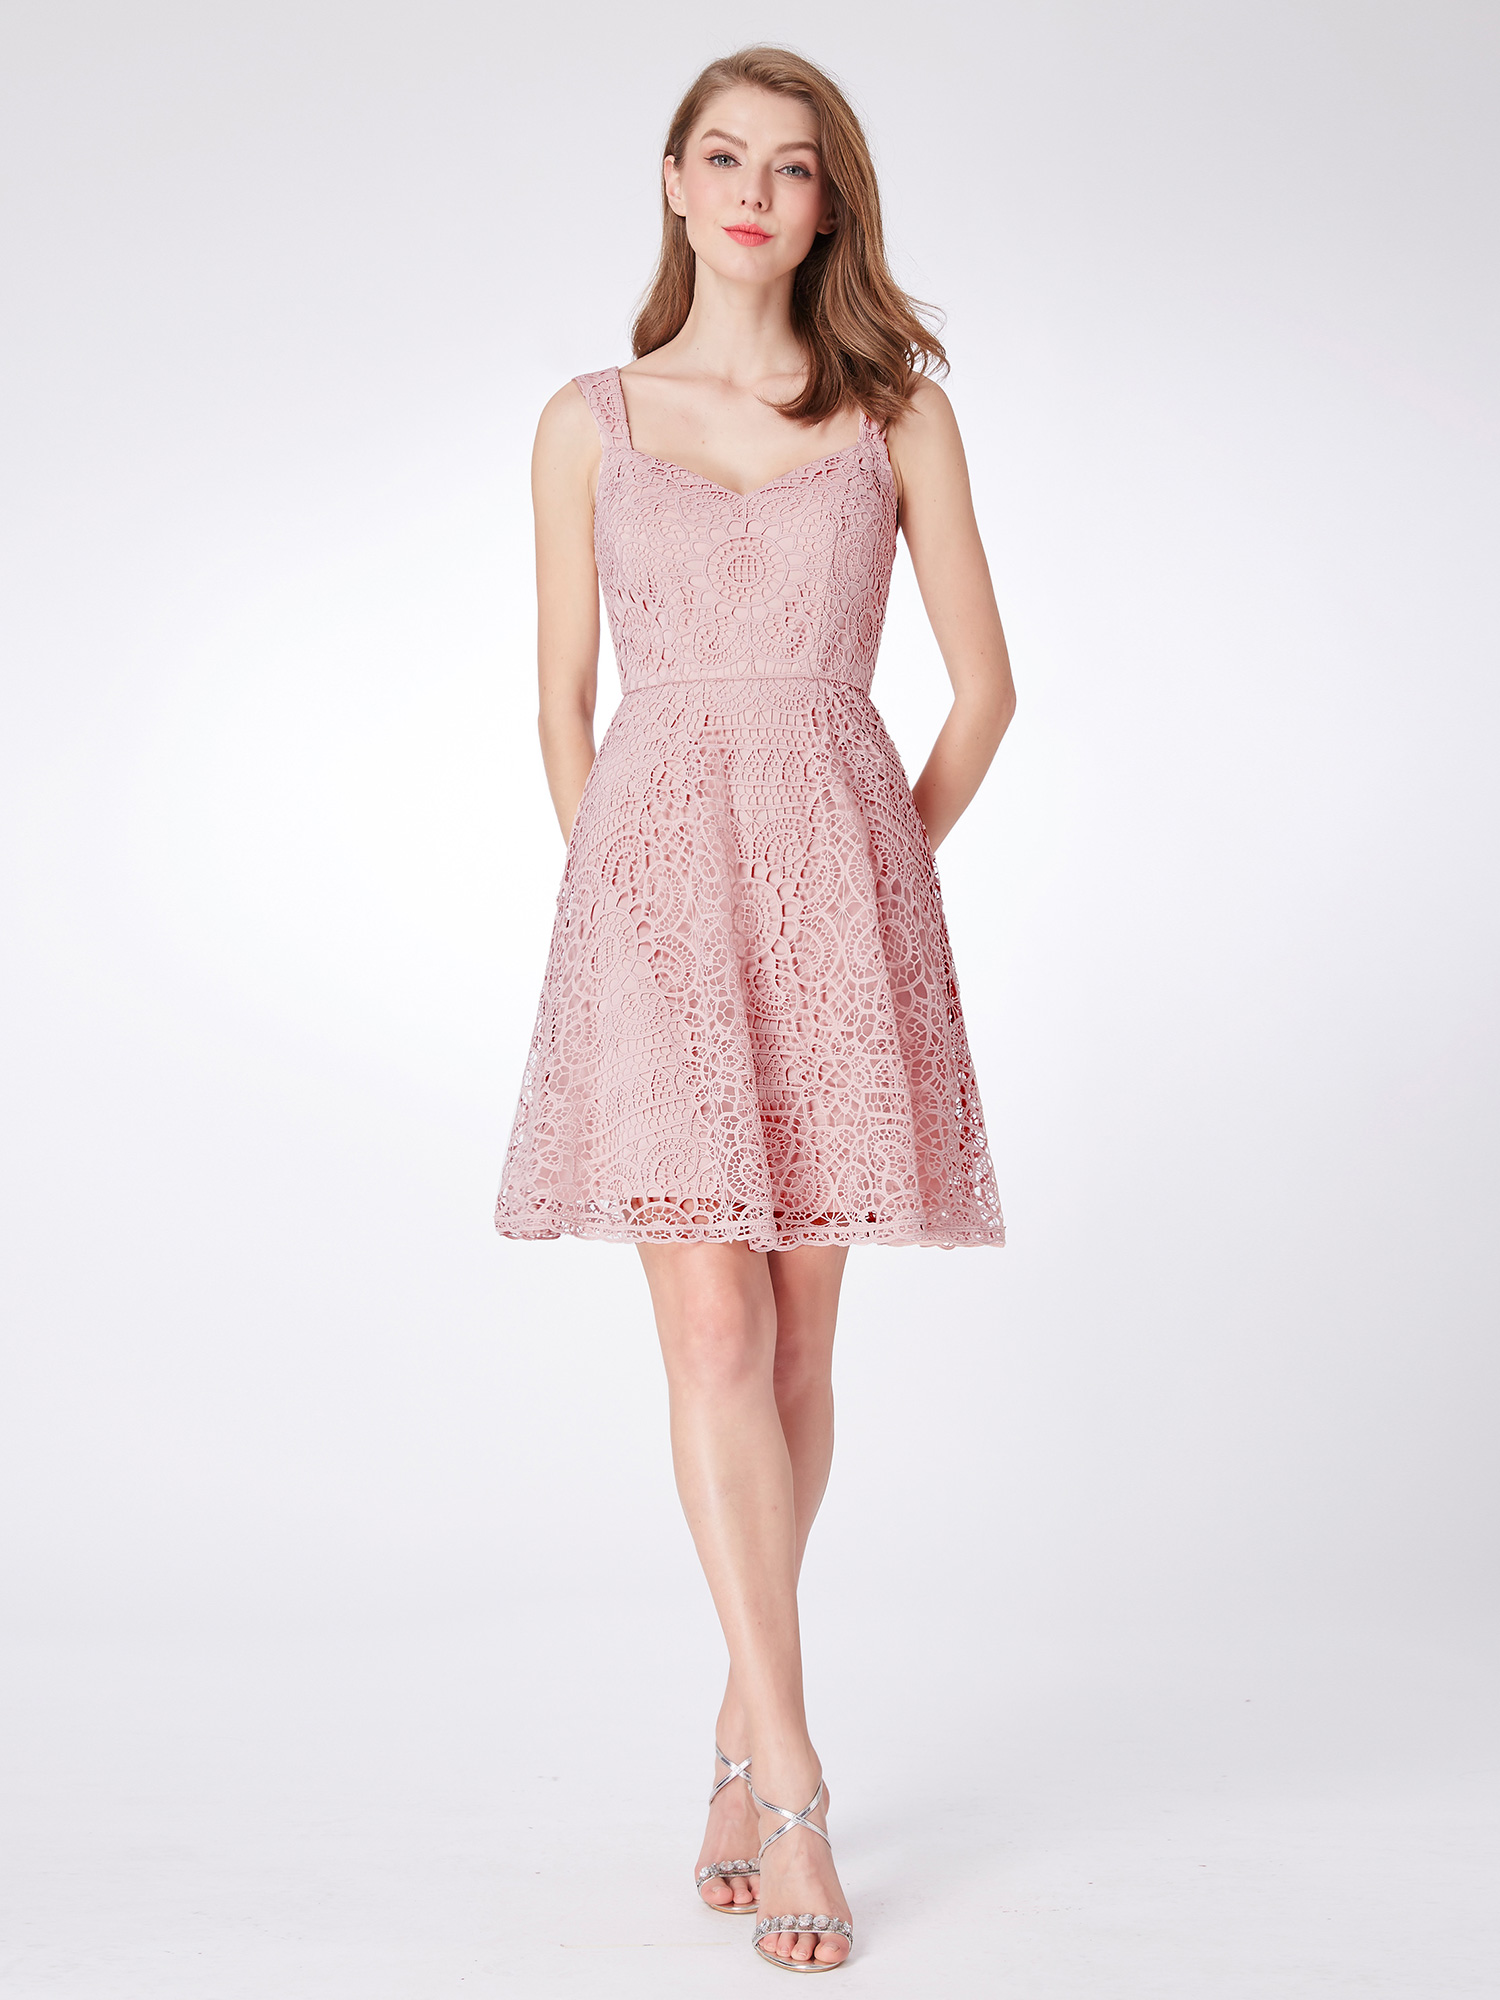 Ever-pretty-Lace-Pink-Evening-Wedding-Homecoming-Semi-Formal-Ball-Dress-04038